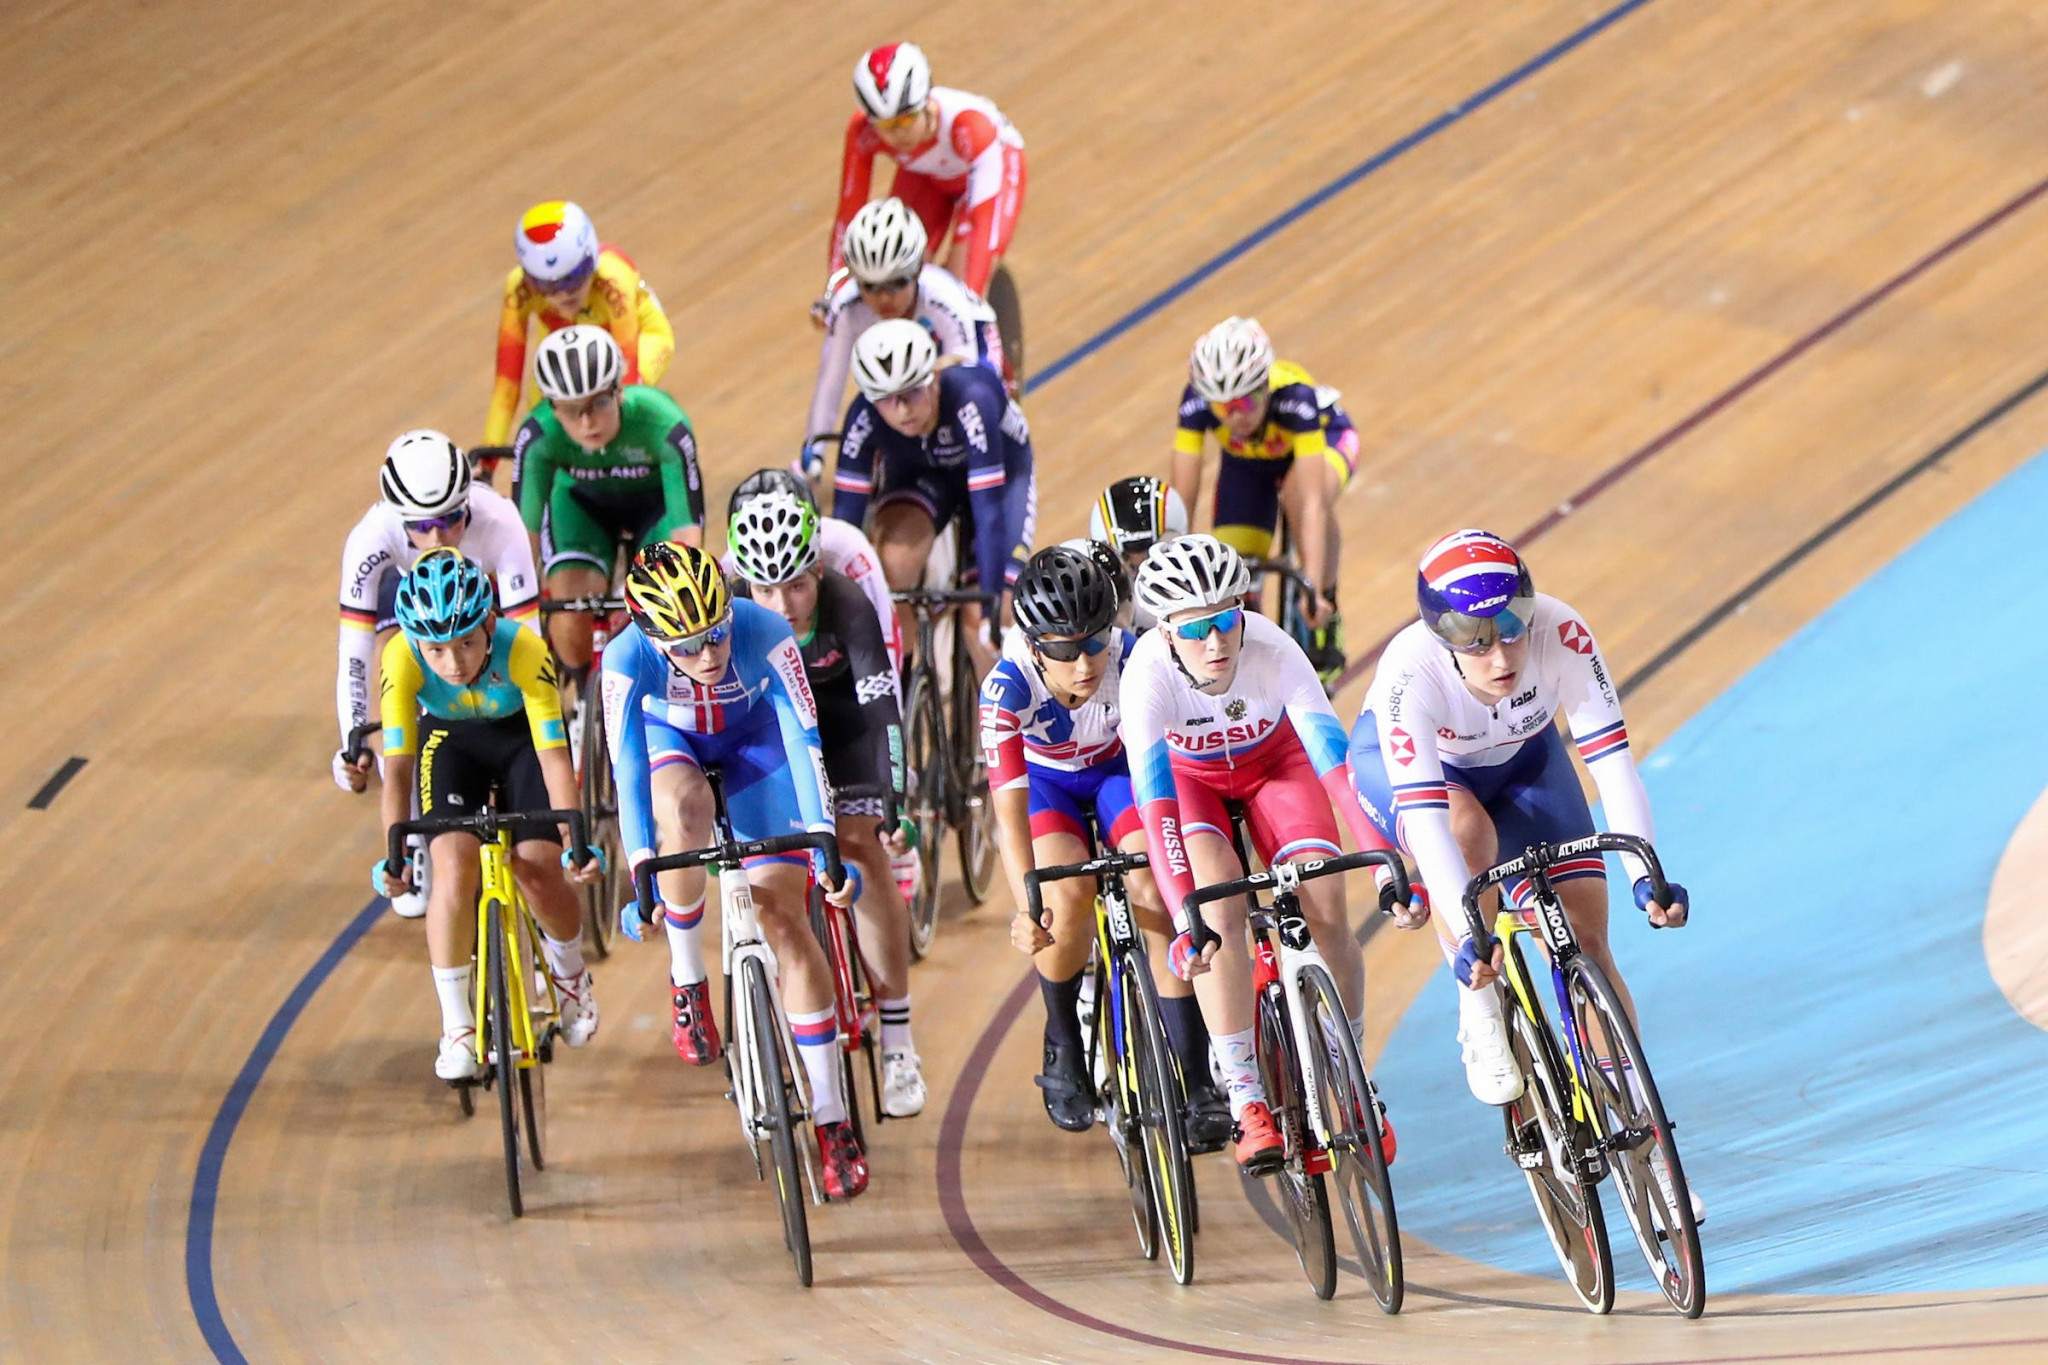 Sibley claims scratch race gold at UCI Junior Track Cycling World Championships